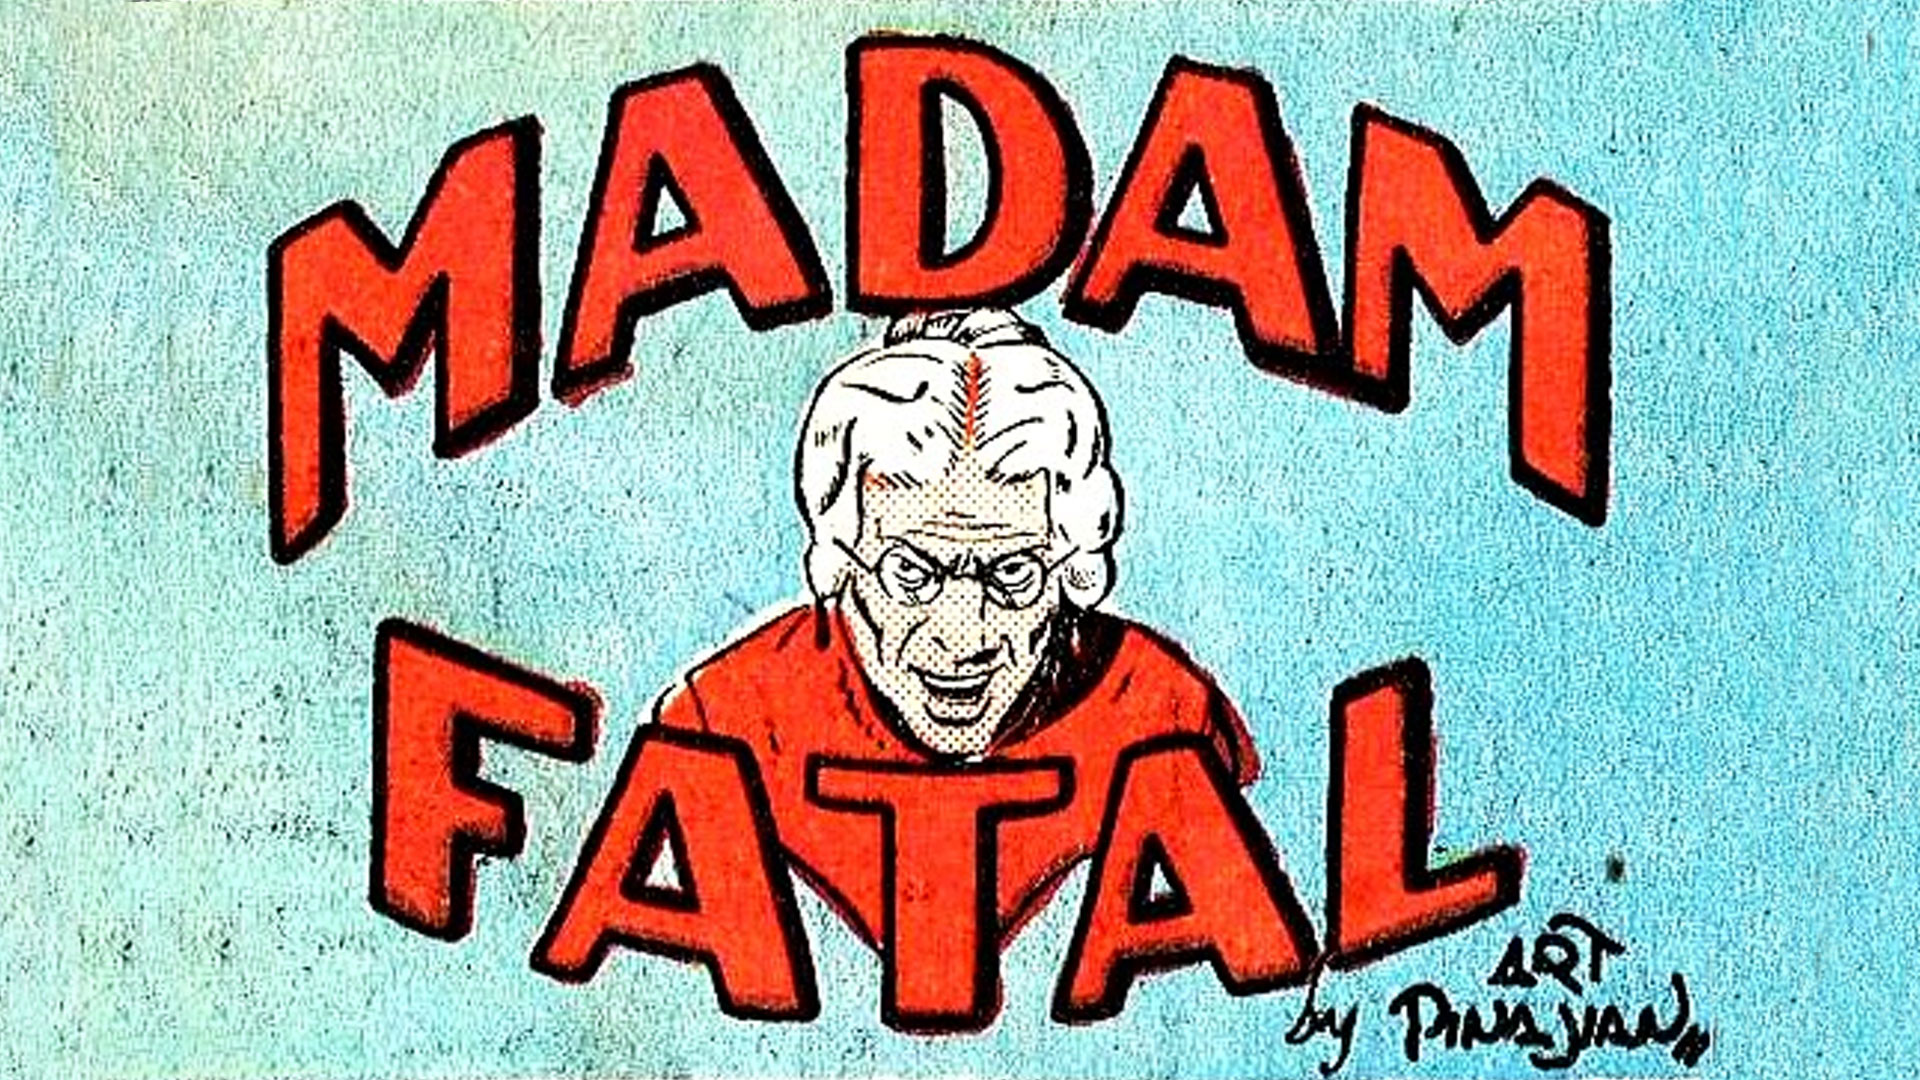 from the comic book Madam Fatal